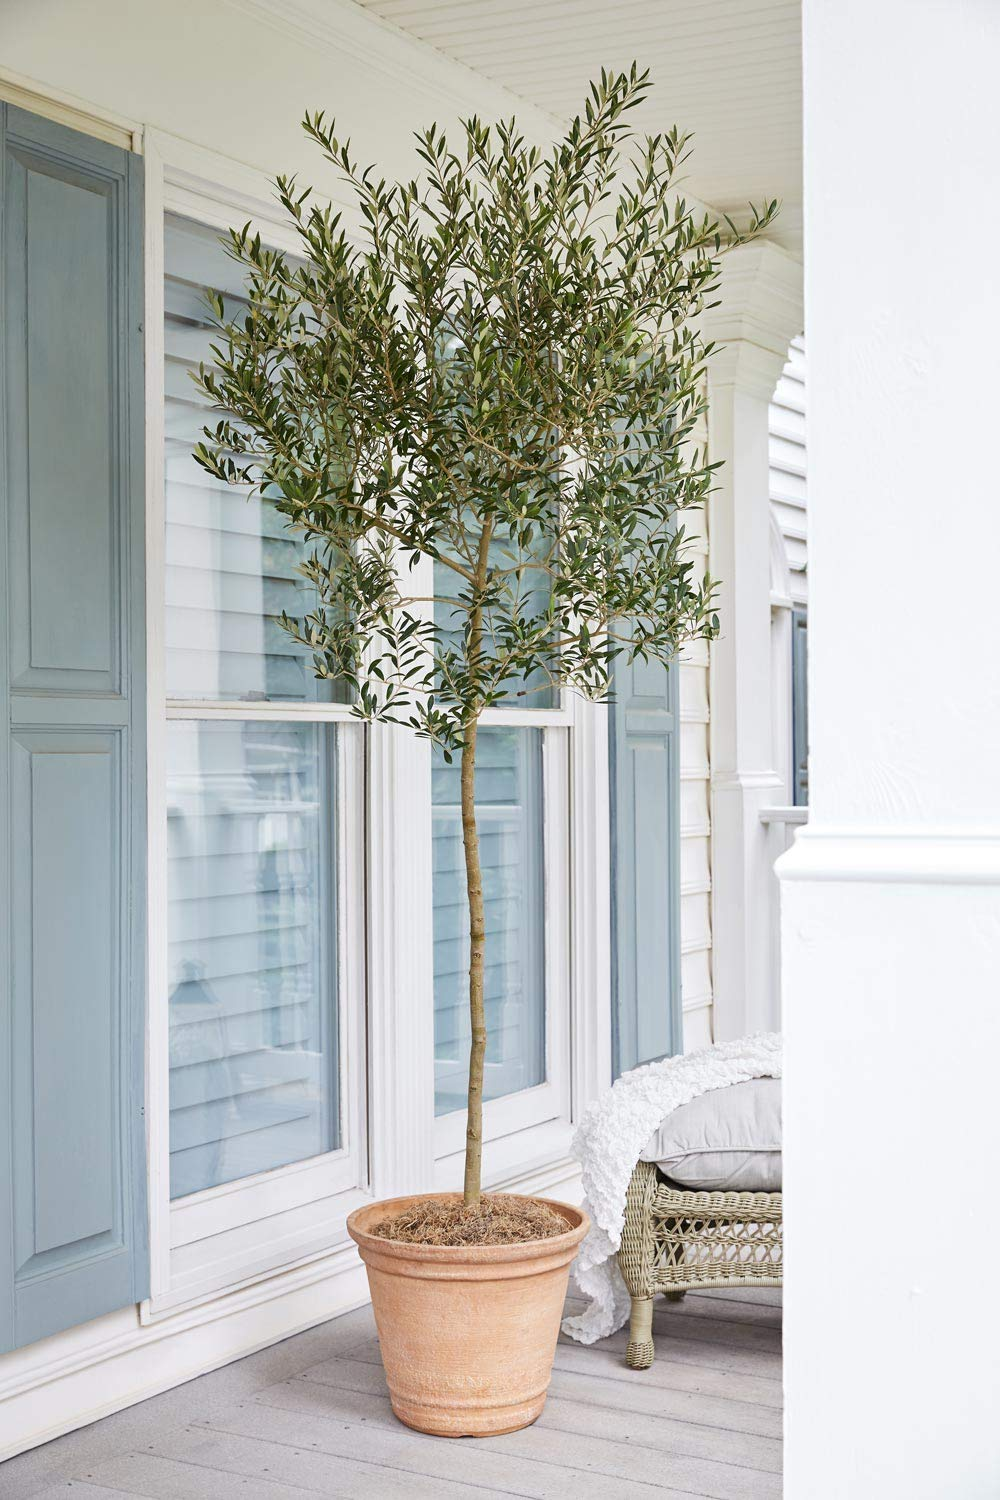 Arbequina Olive Tree 5-6 feet Tall - Get Olives 1st Year with Large Olive Trees - Indoor/Patio Live Olive Trees by Brighter Blooms (Image #3)